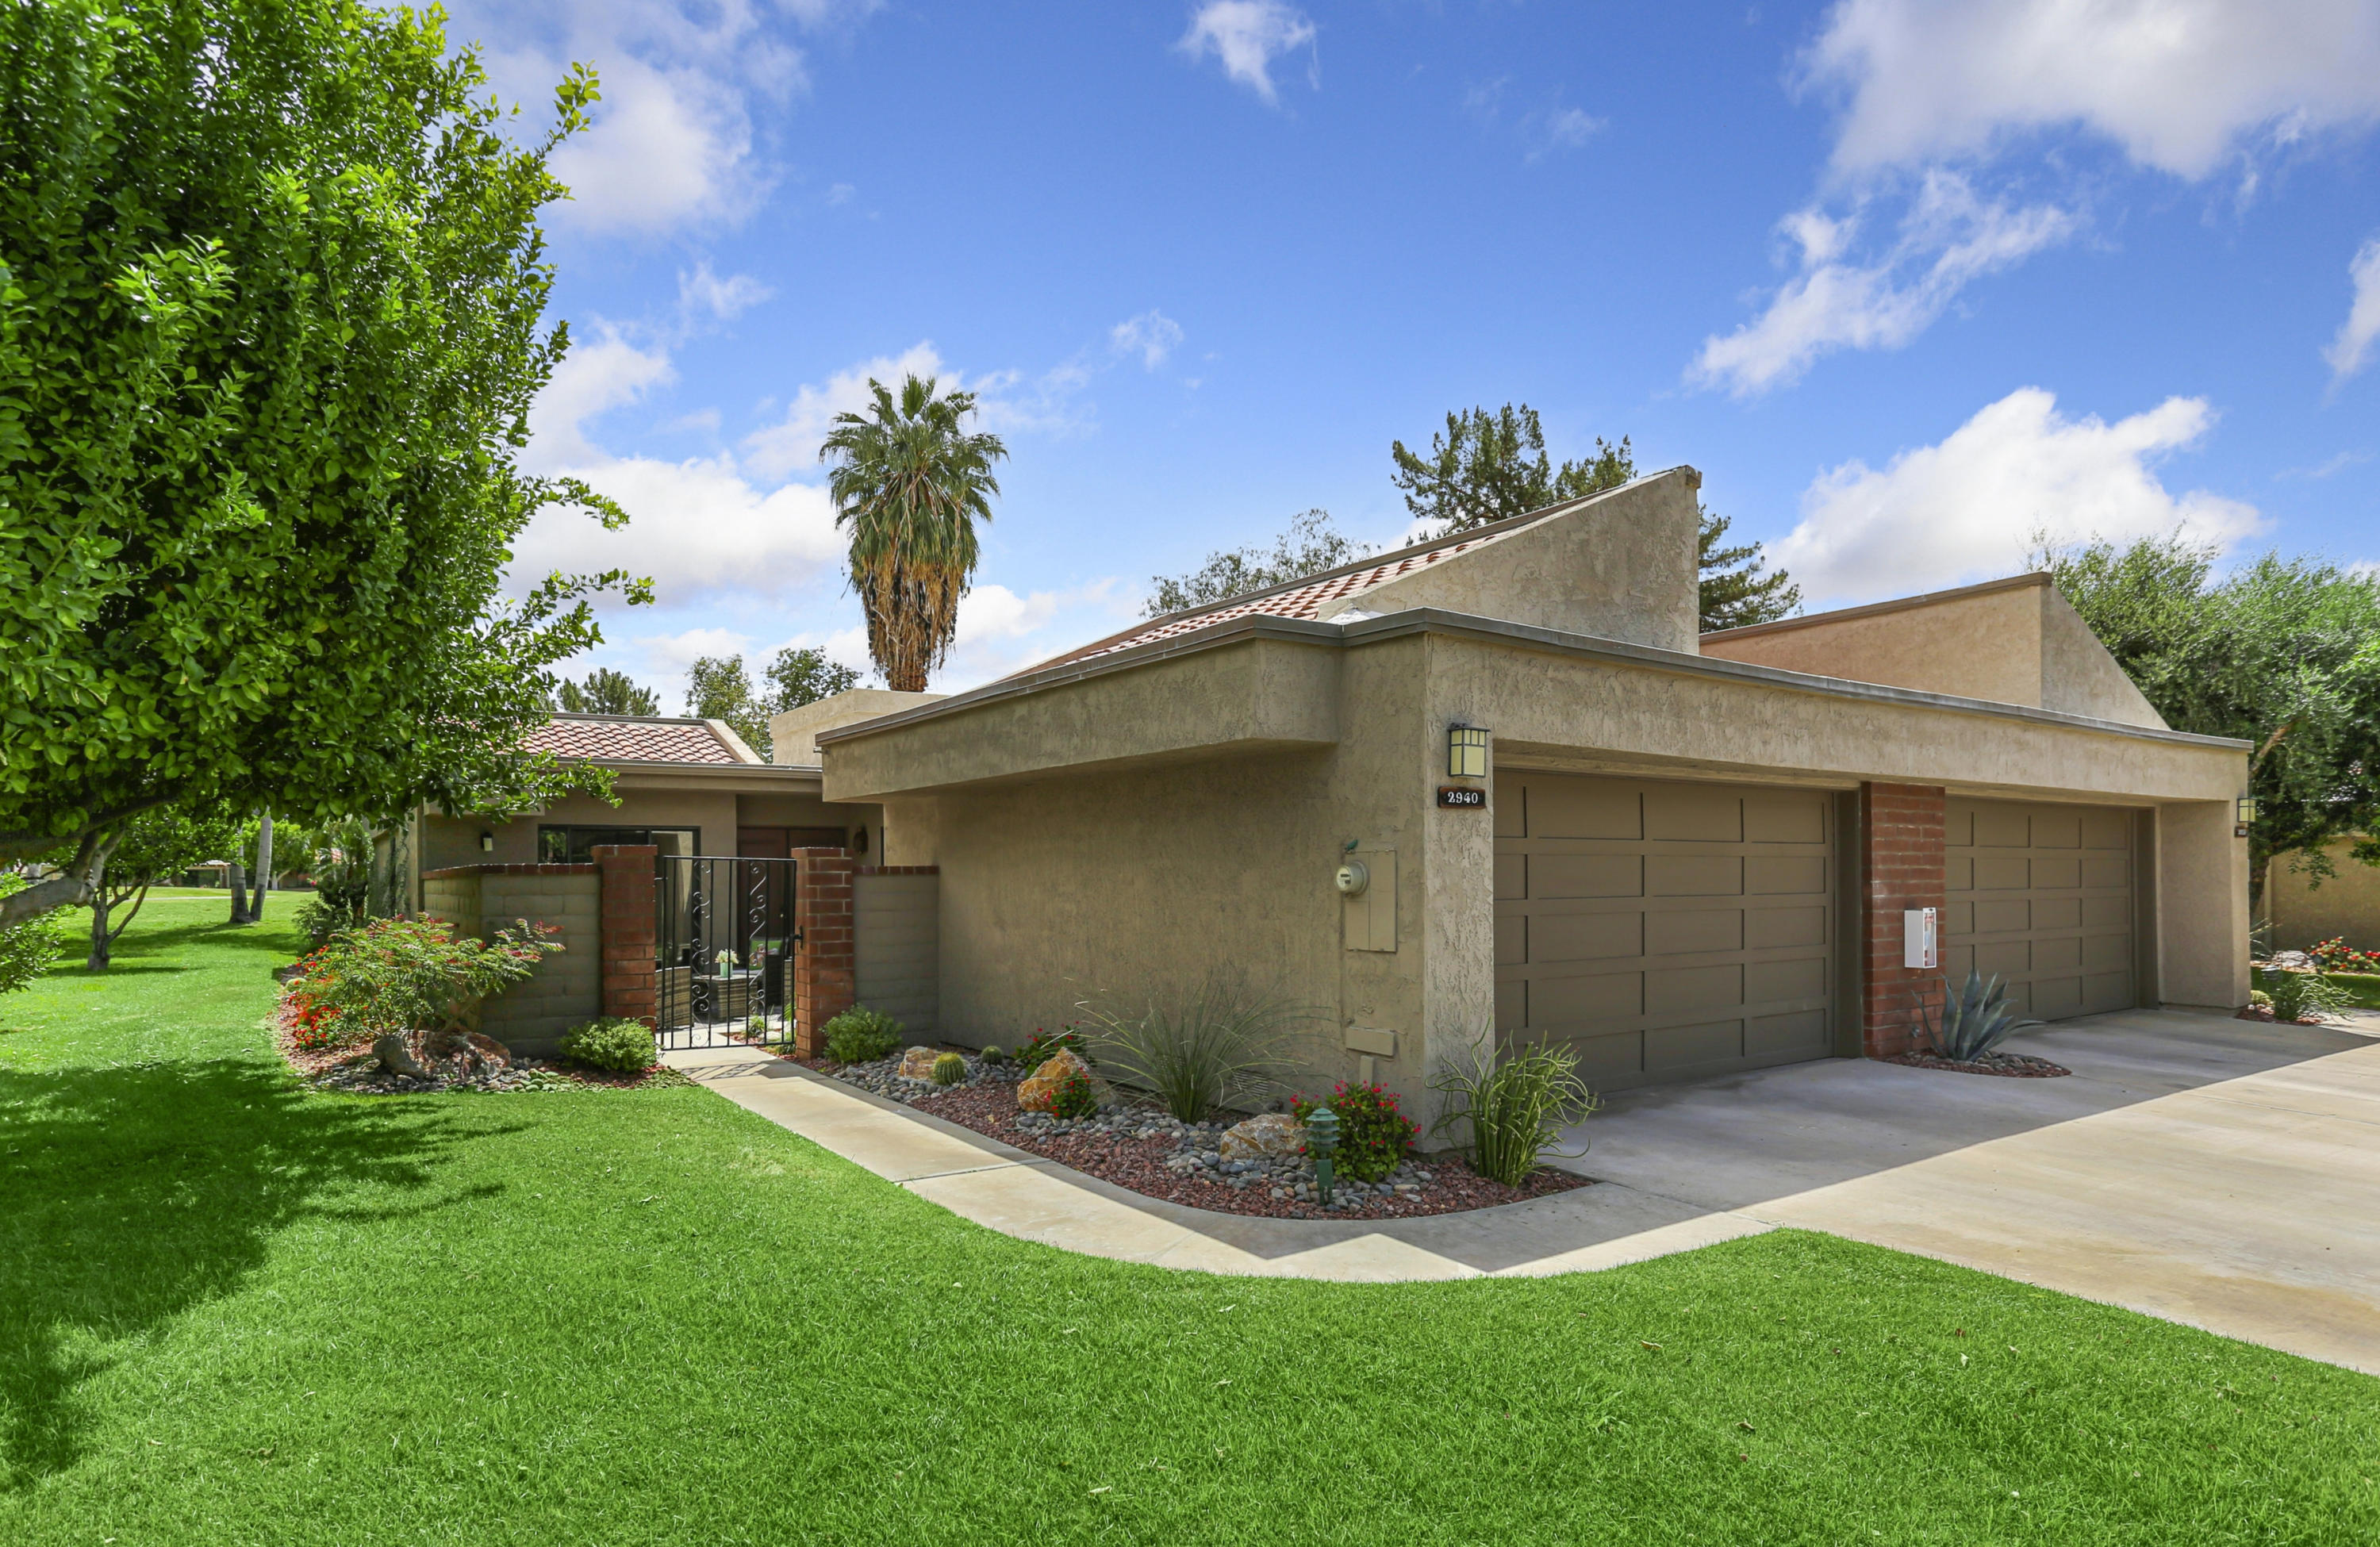 Beautifully maintained 2 bedroom 2 bath condo with atrium conversion to den and being offered turnkey furnished.  So much to offer here, just take a look at the pictures.  Highly desirable gated West Gate Complex and located in Palm Springs.  Do not miss this one.